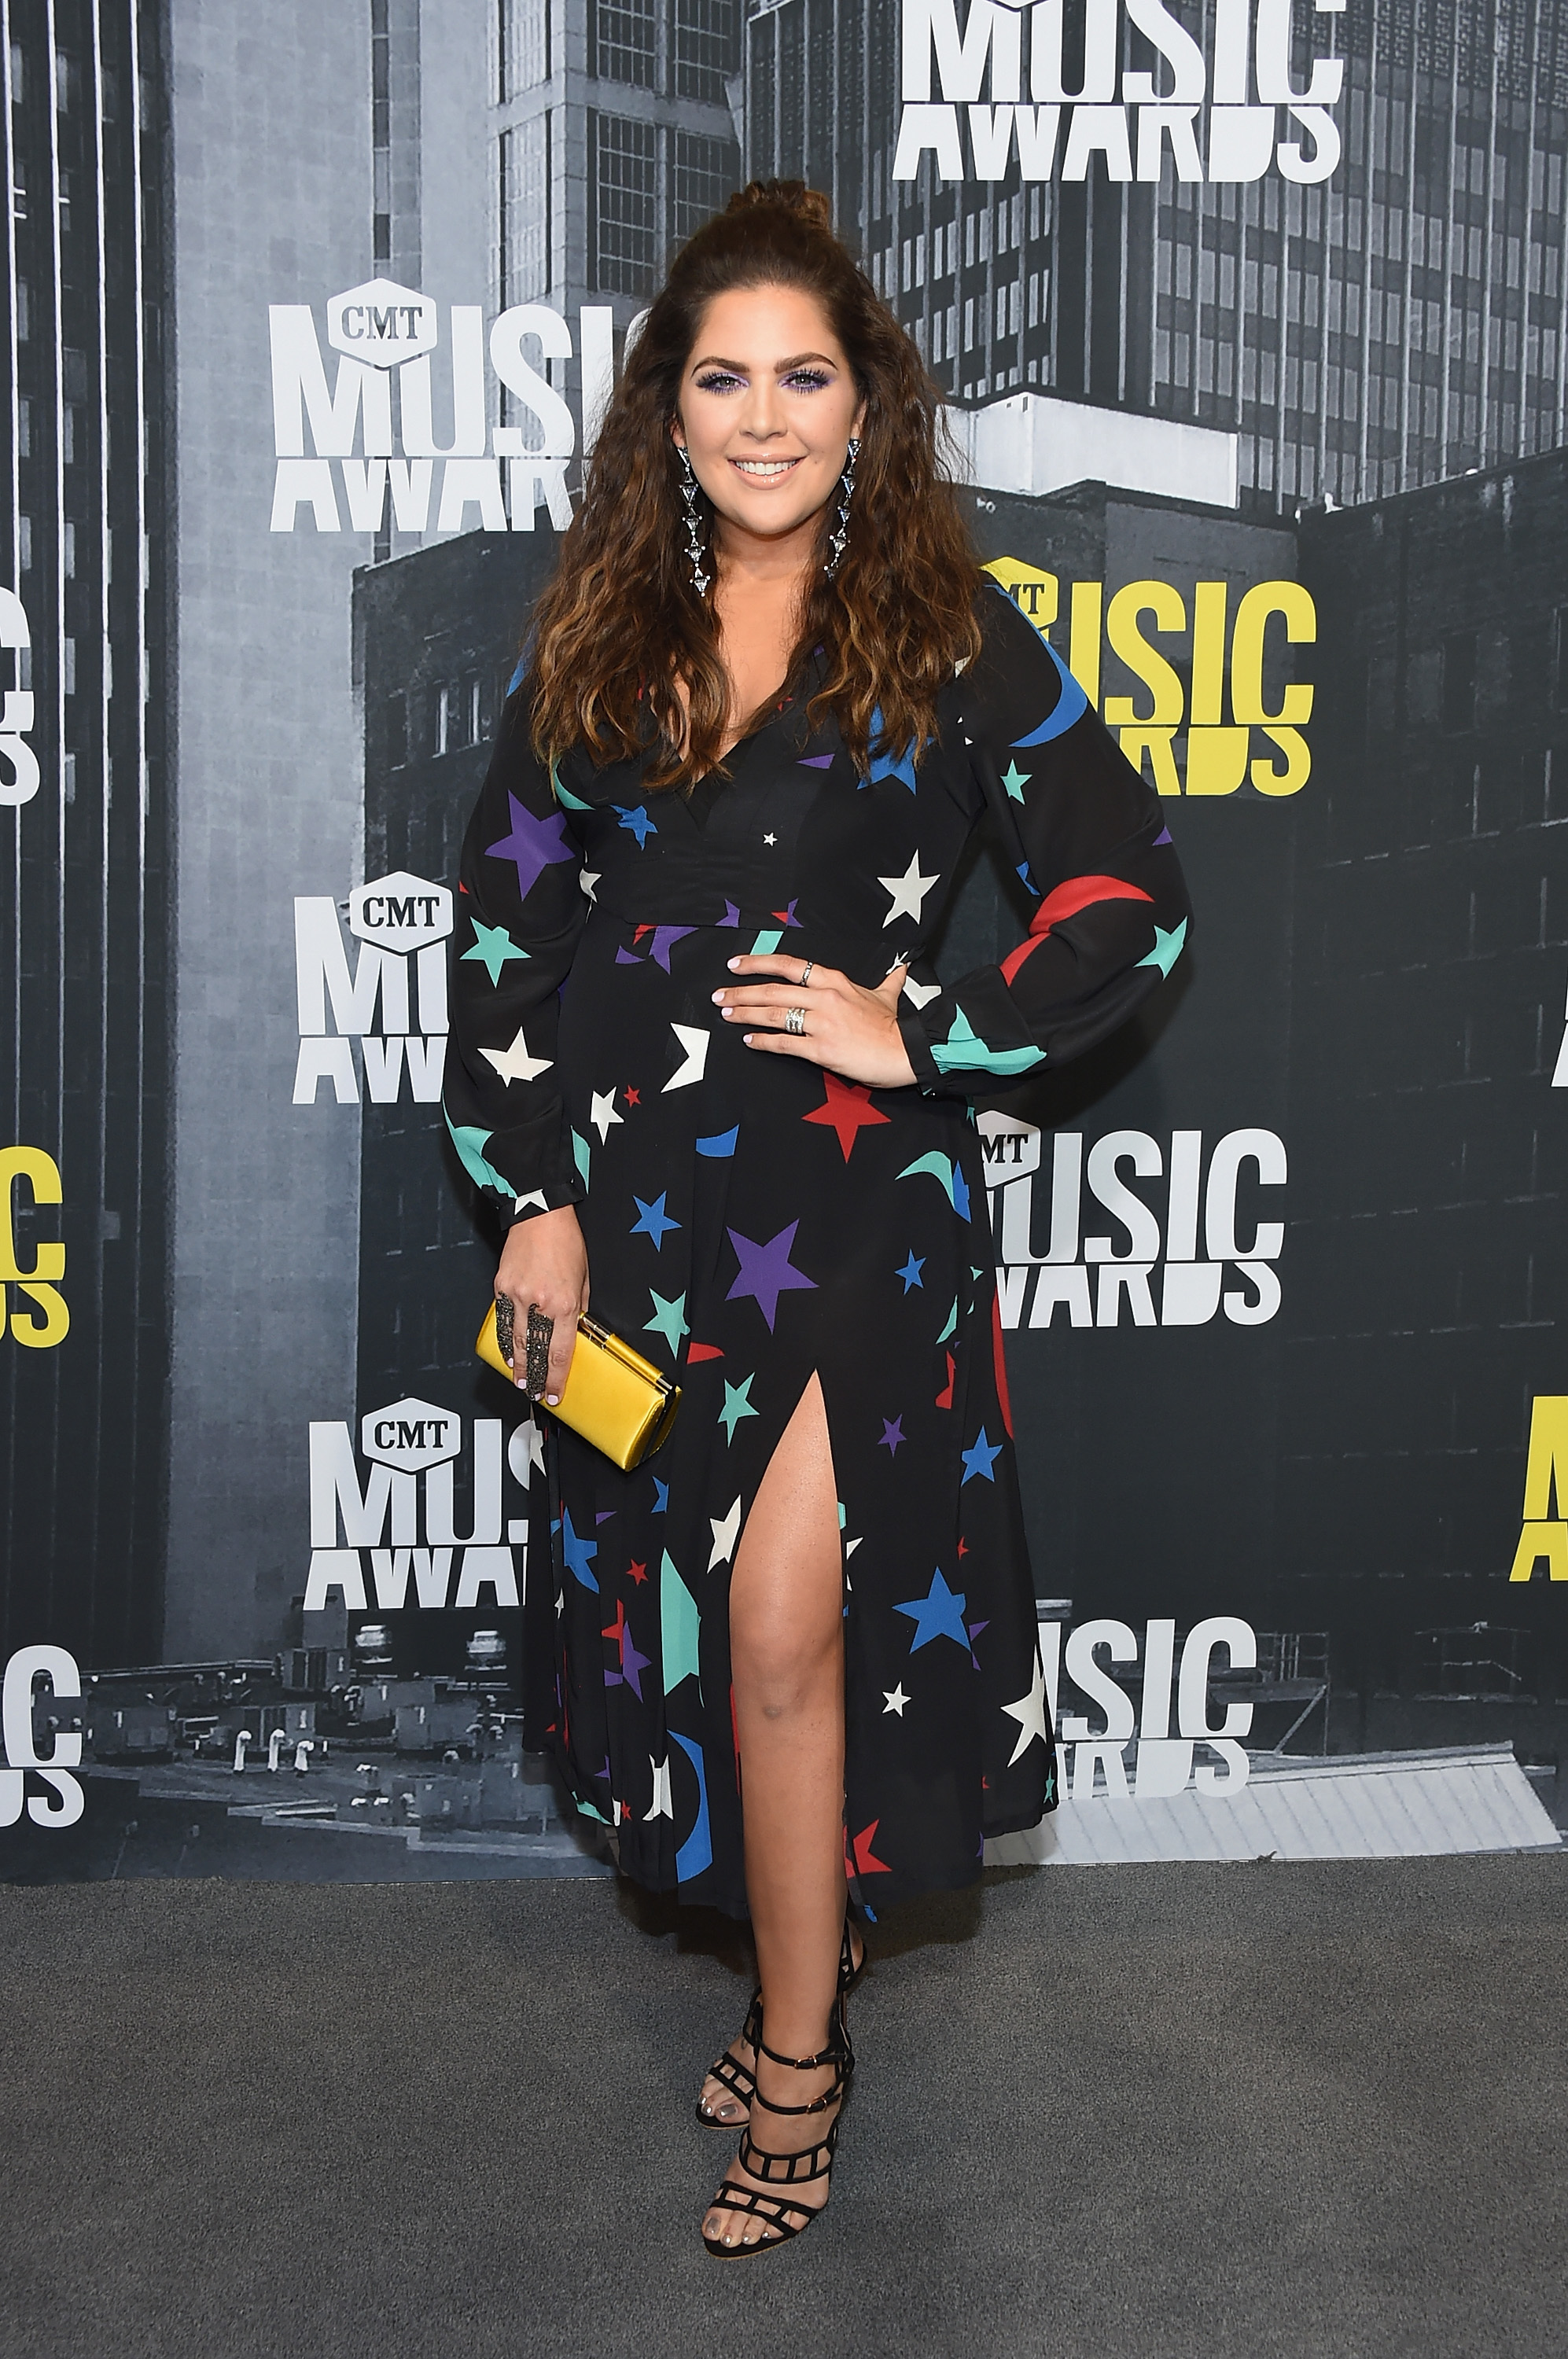 Hillary Scott of Lady Antebellum attends the 2017 CMT Music Awards at the Music City Center  in Nashville, Tennessee, on June 7, 2017.